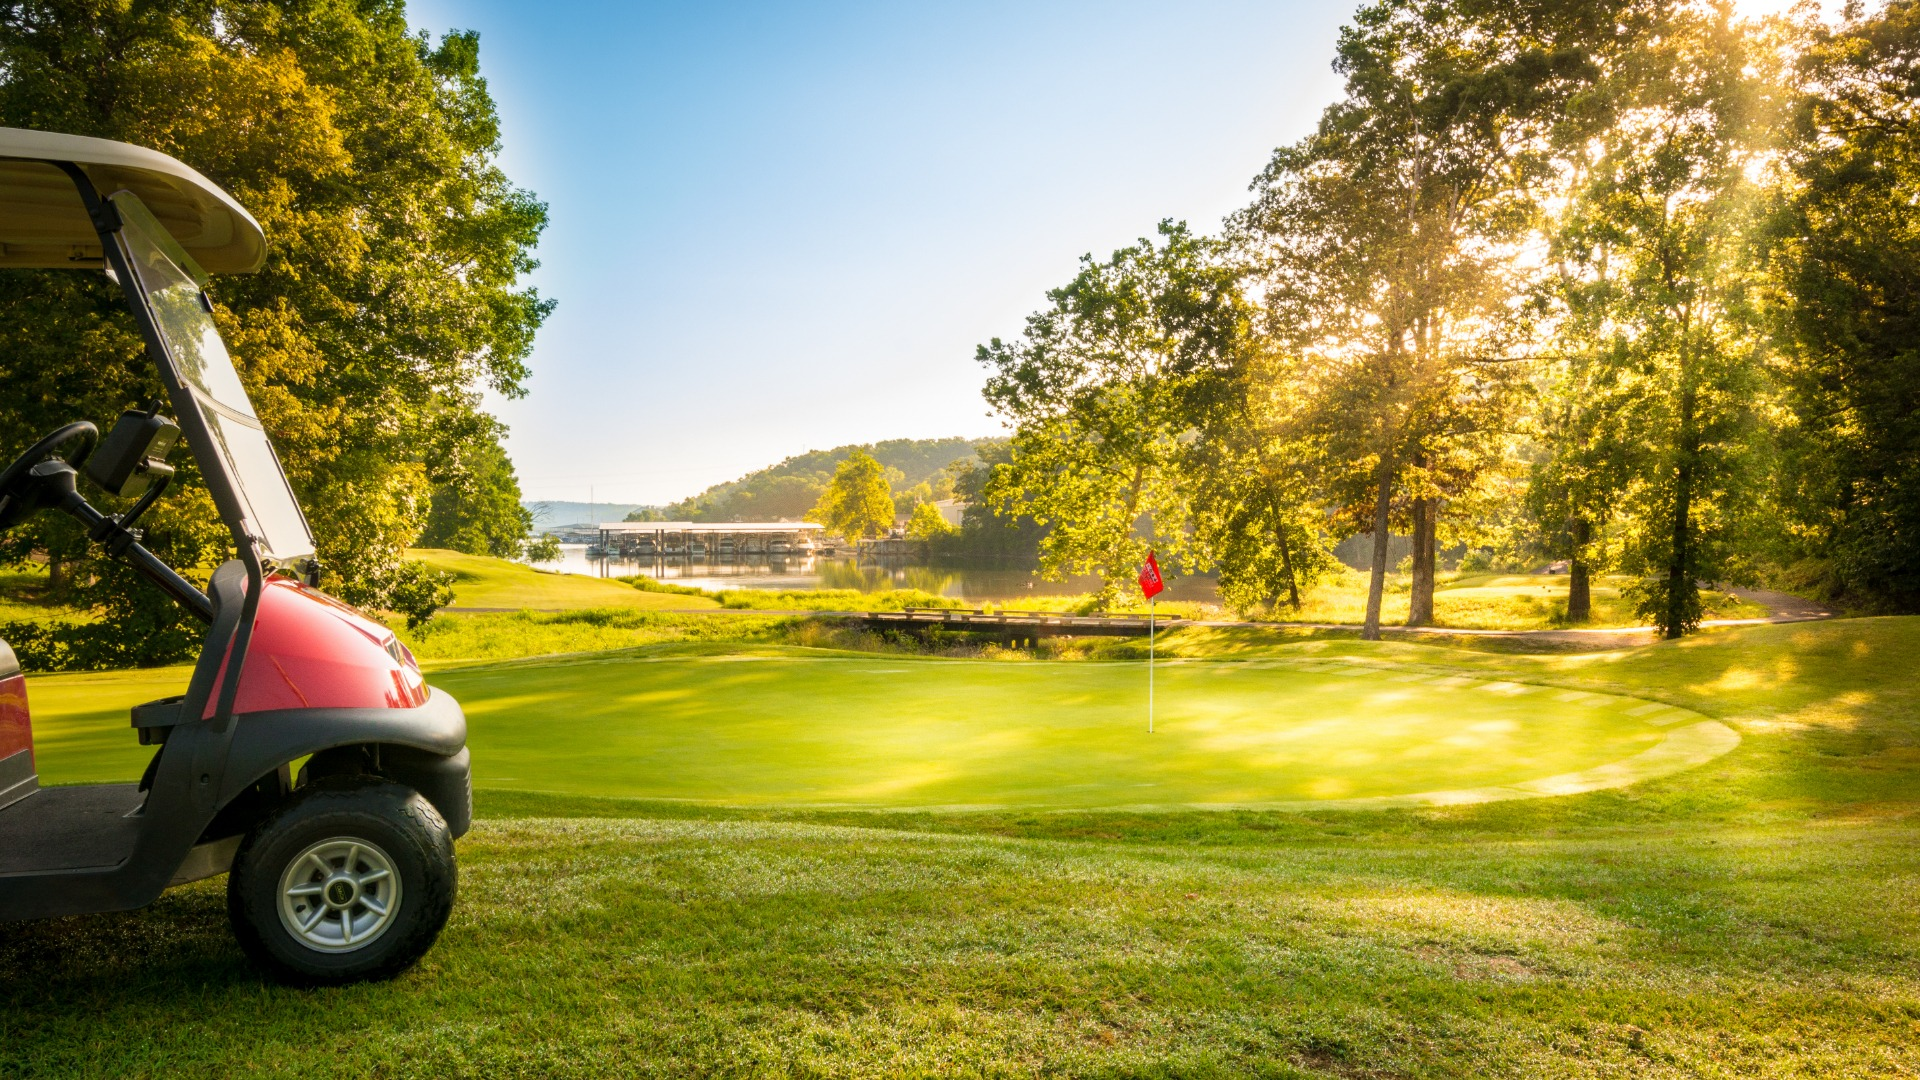 The Lake of the Ozarks accompanies a hole on one of the course at The Lodge of Four Seasons